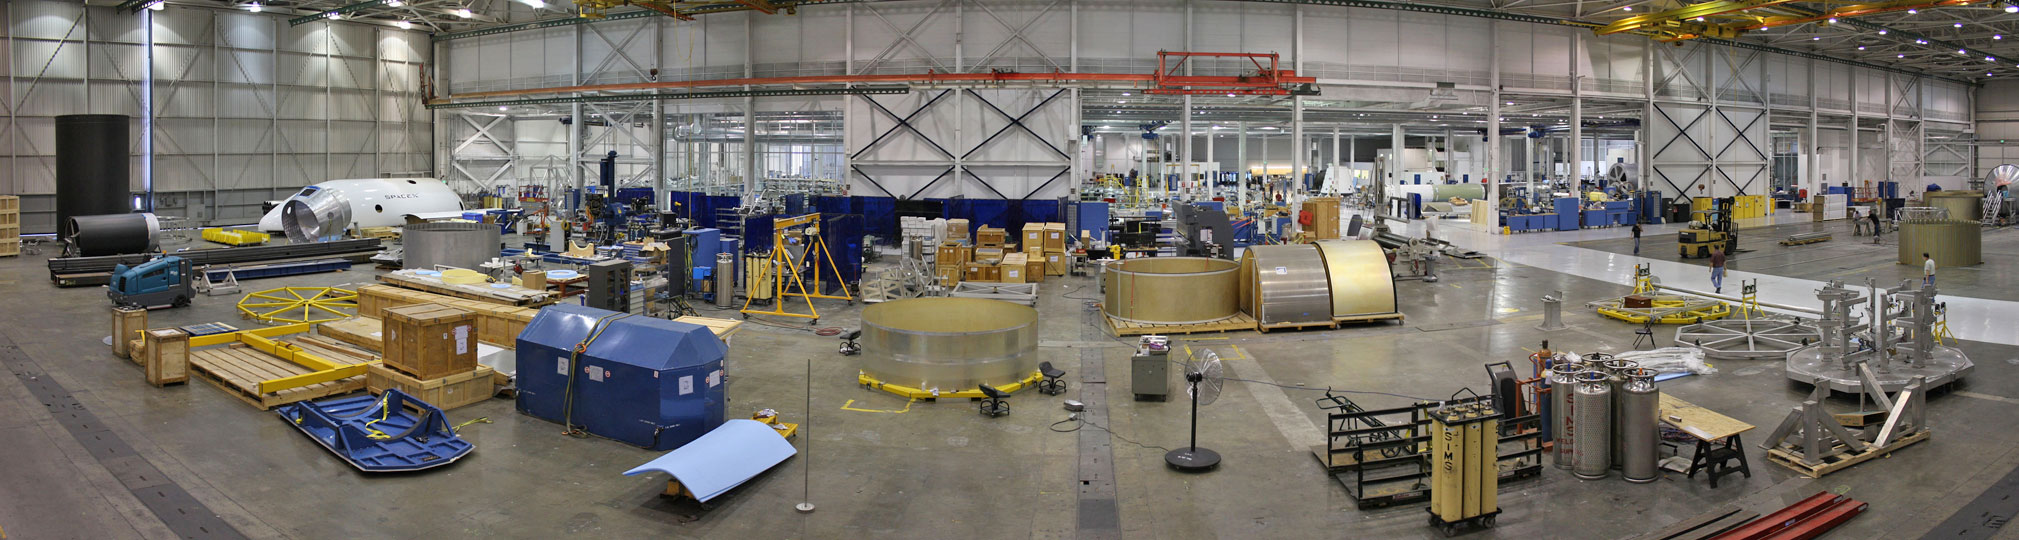 inside spacex factory - photo #16